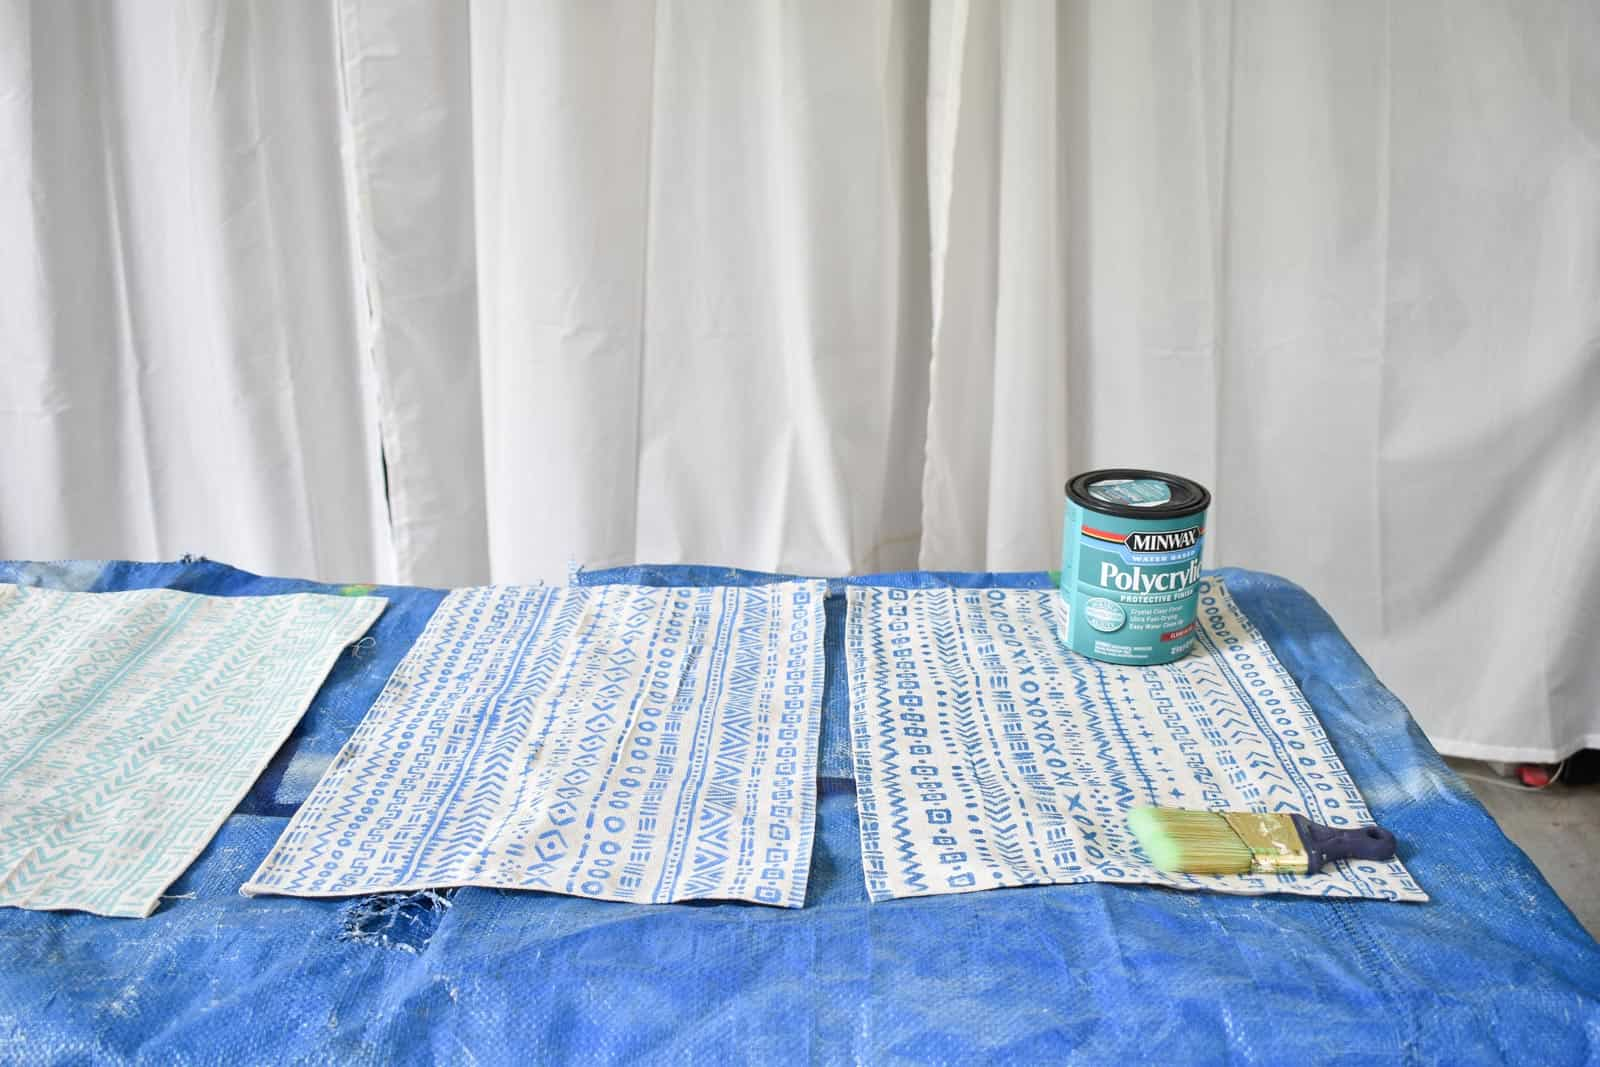 paint placemats with polycrylic to seal